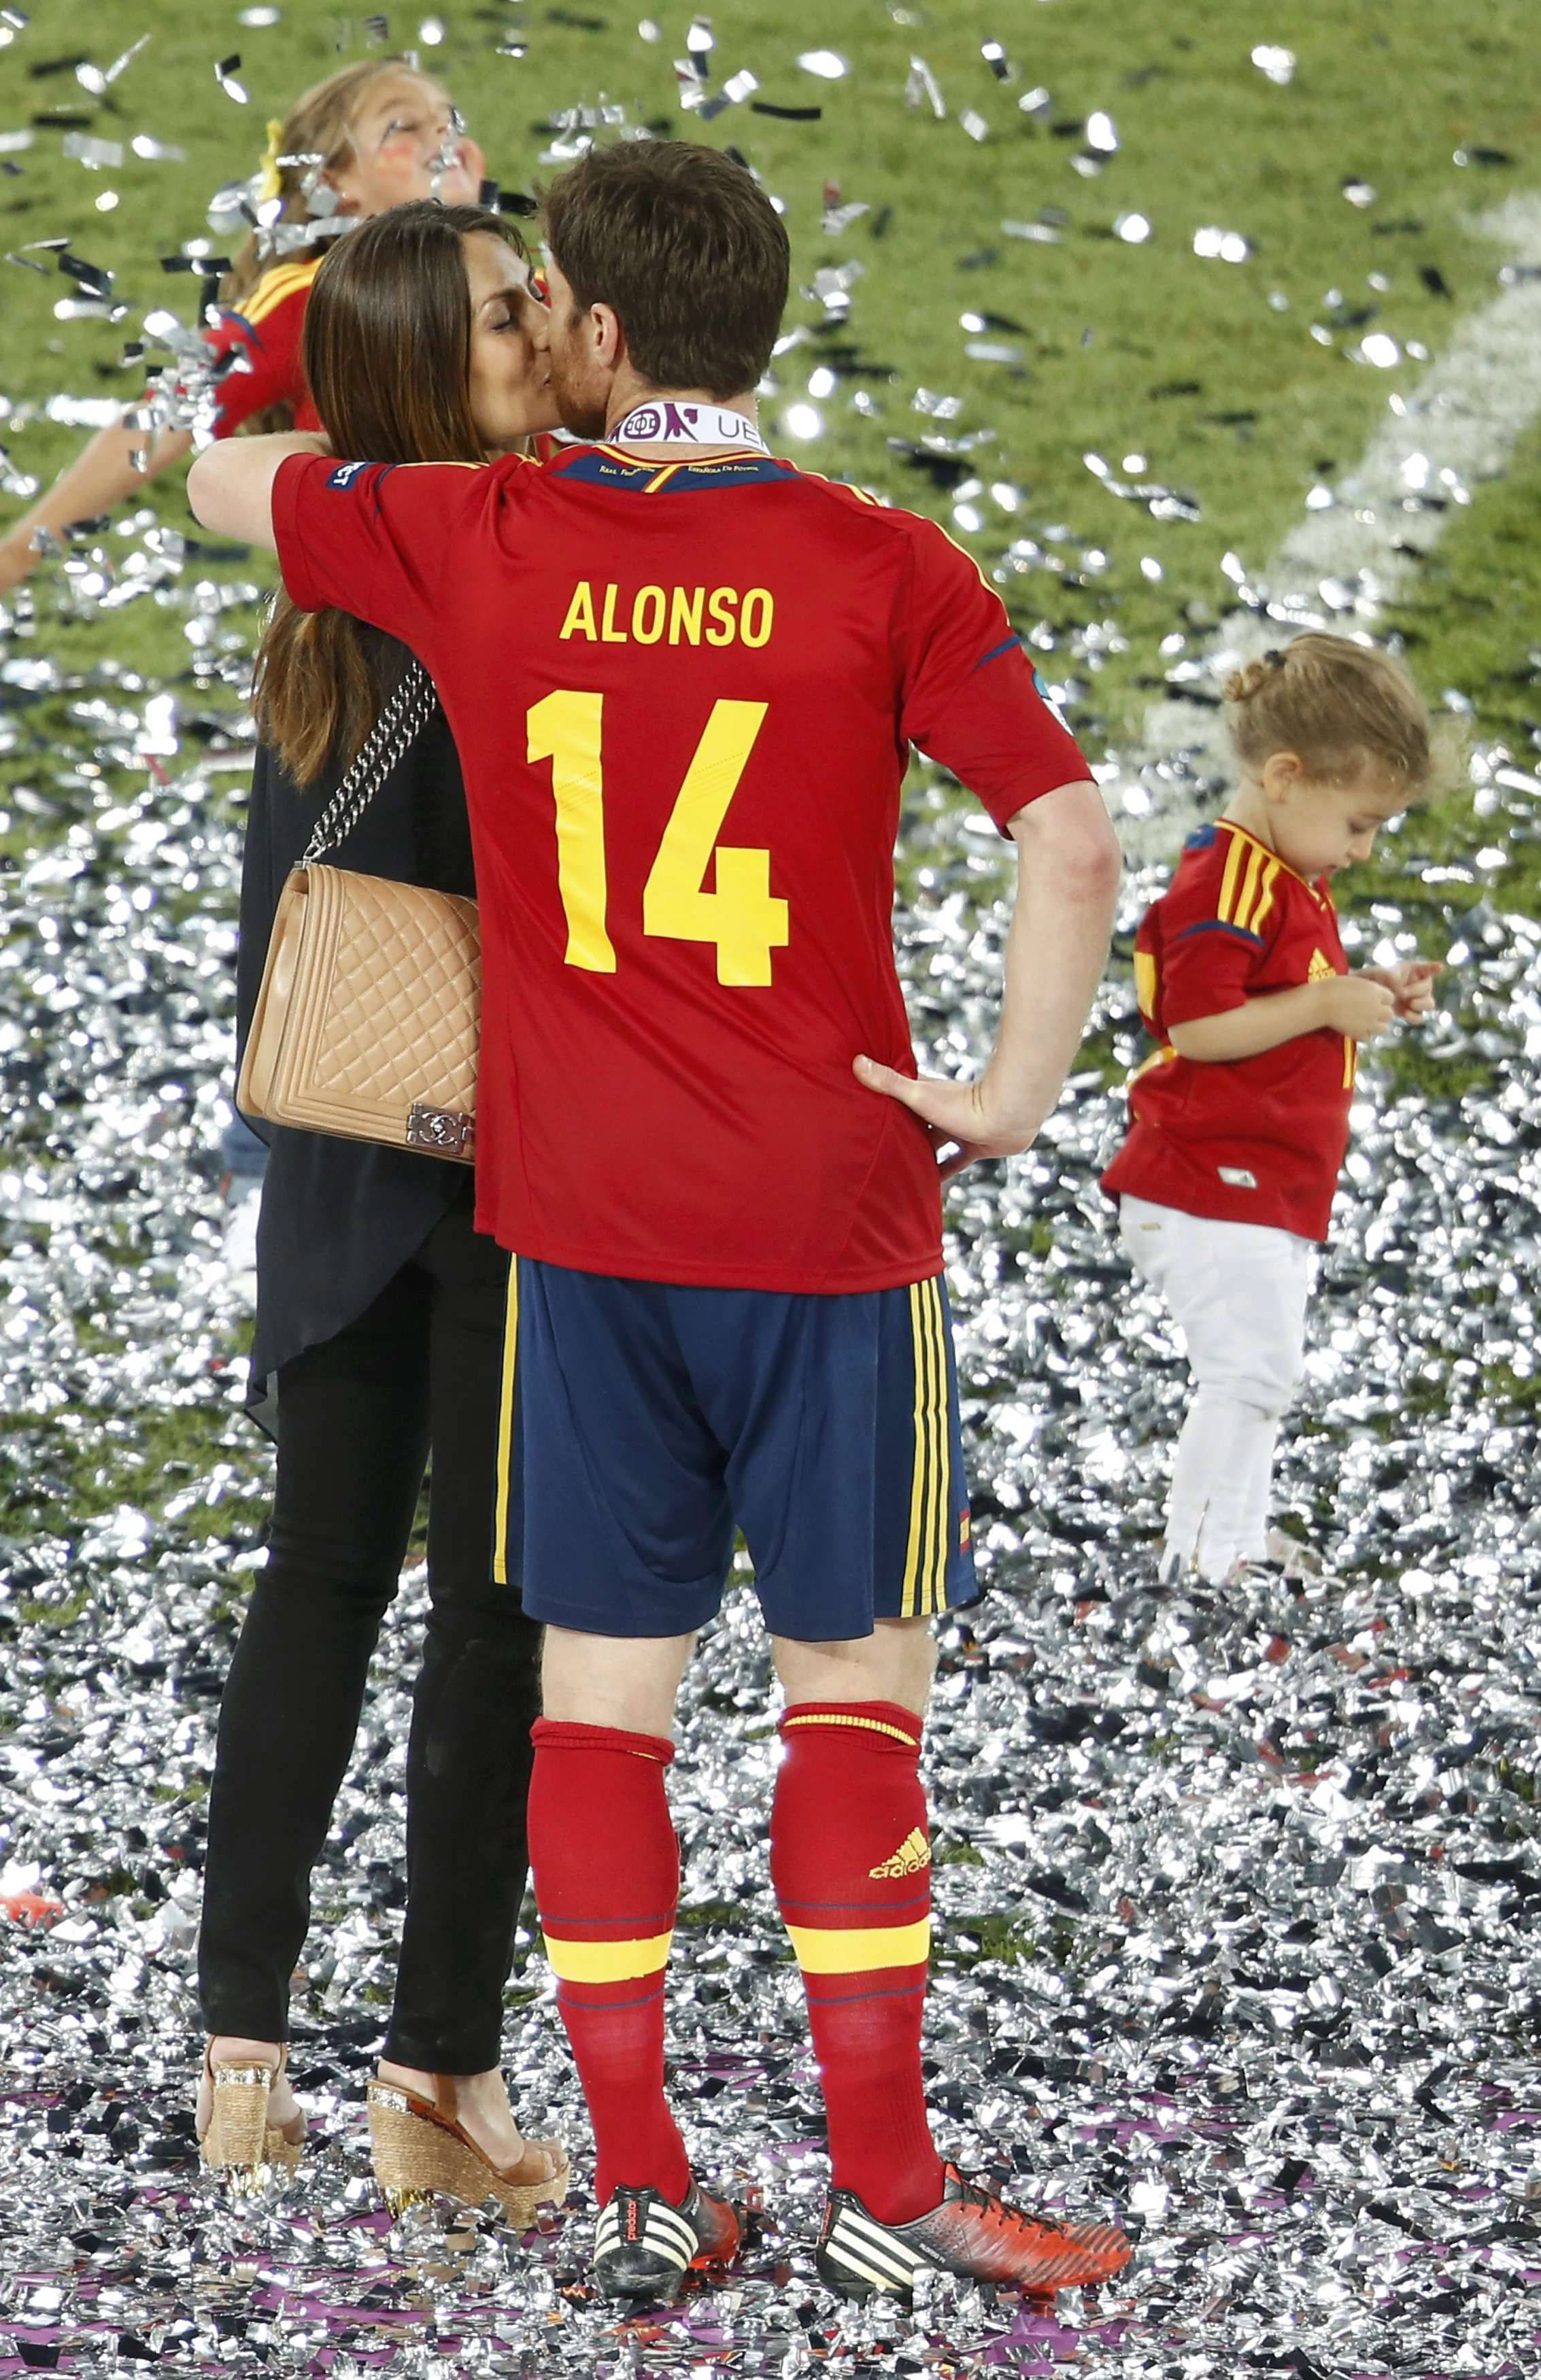 Spain's Xabi Alonso kisses his wife Nagore on the pitch after defeating Italy to win the Euro 2012 final soccer match at the Olympic stadium in Kiev, July 1, 2012. REUTERS           REUTERS/Charles Platiau (UKRAINE  - Tags: SPORT SOCCER TPX IMAGES OF THE DAY)